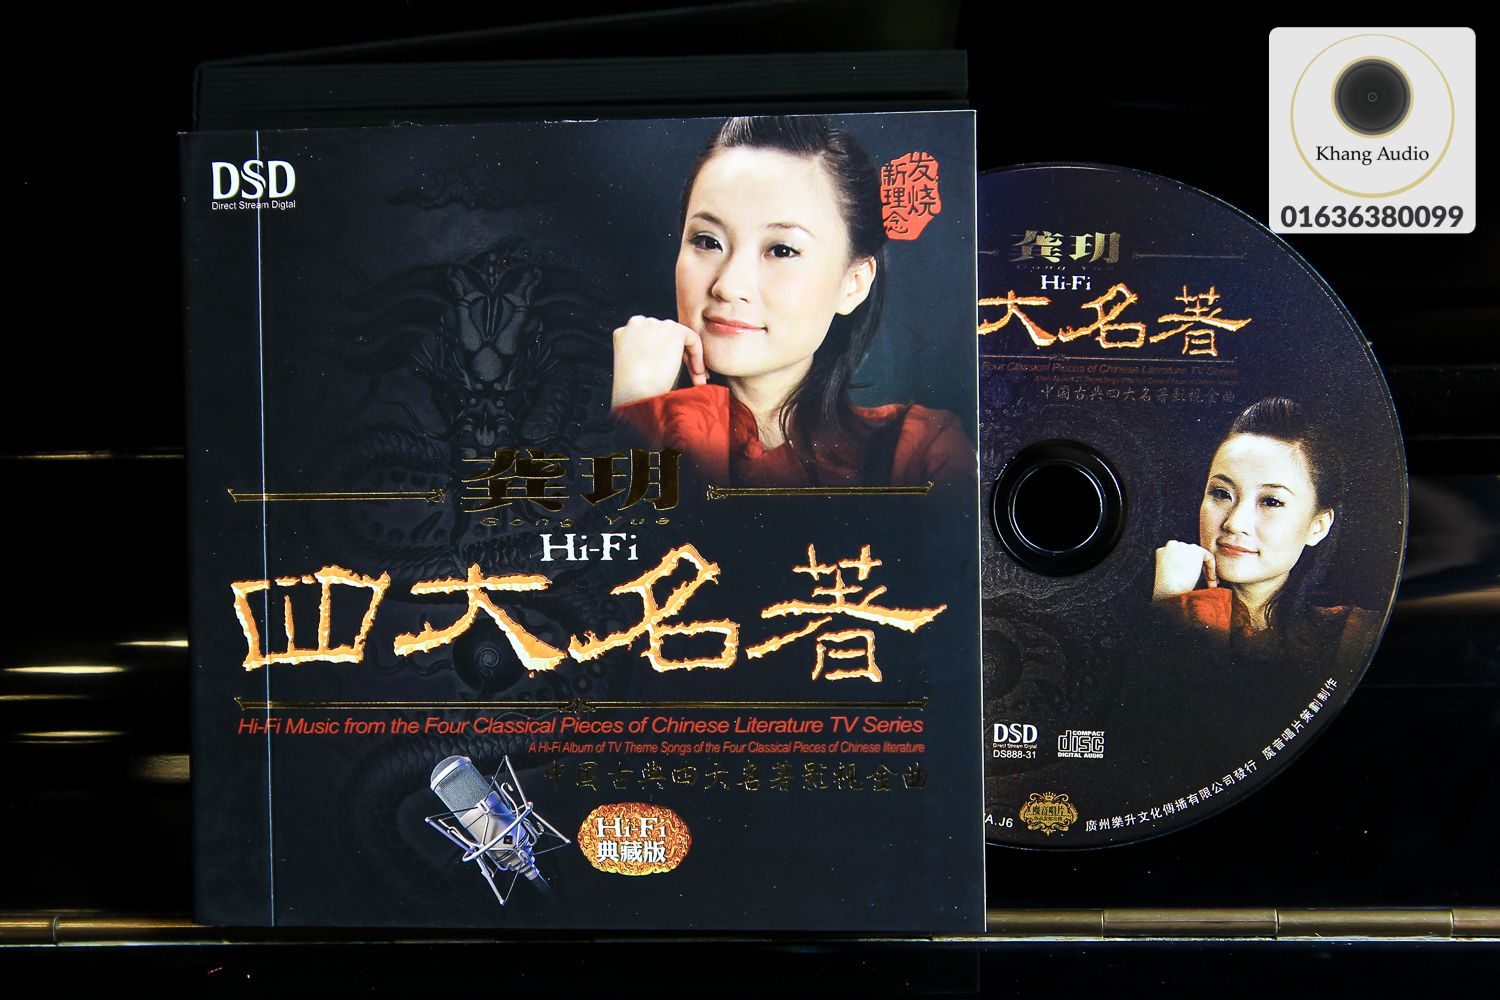 Hi-Fi Music from the Four Classical Pieces of Chinese Literature TV Series HQ